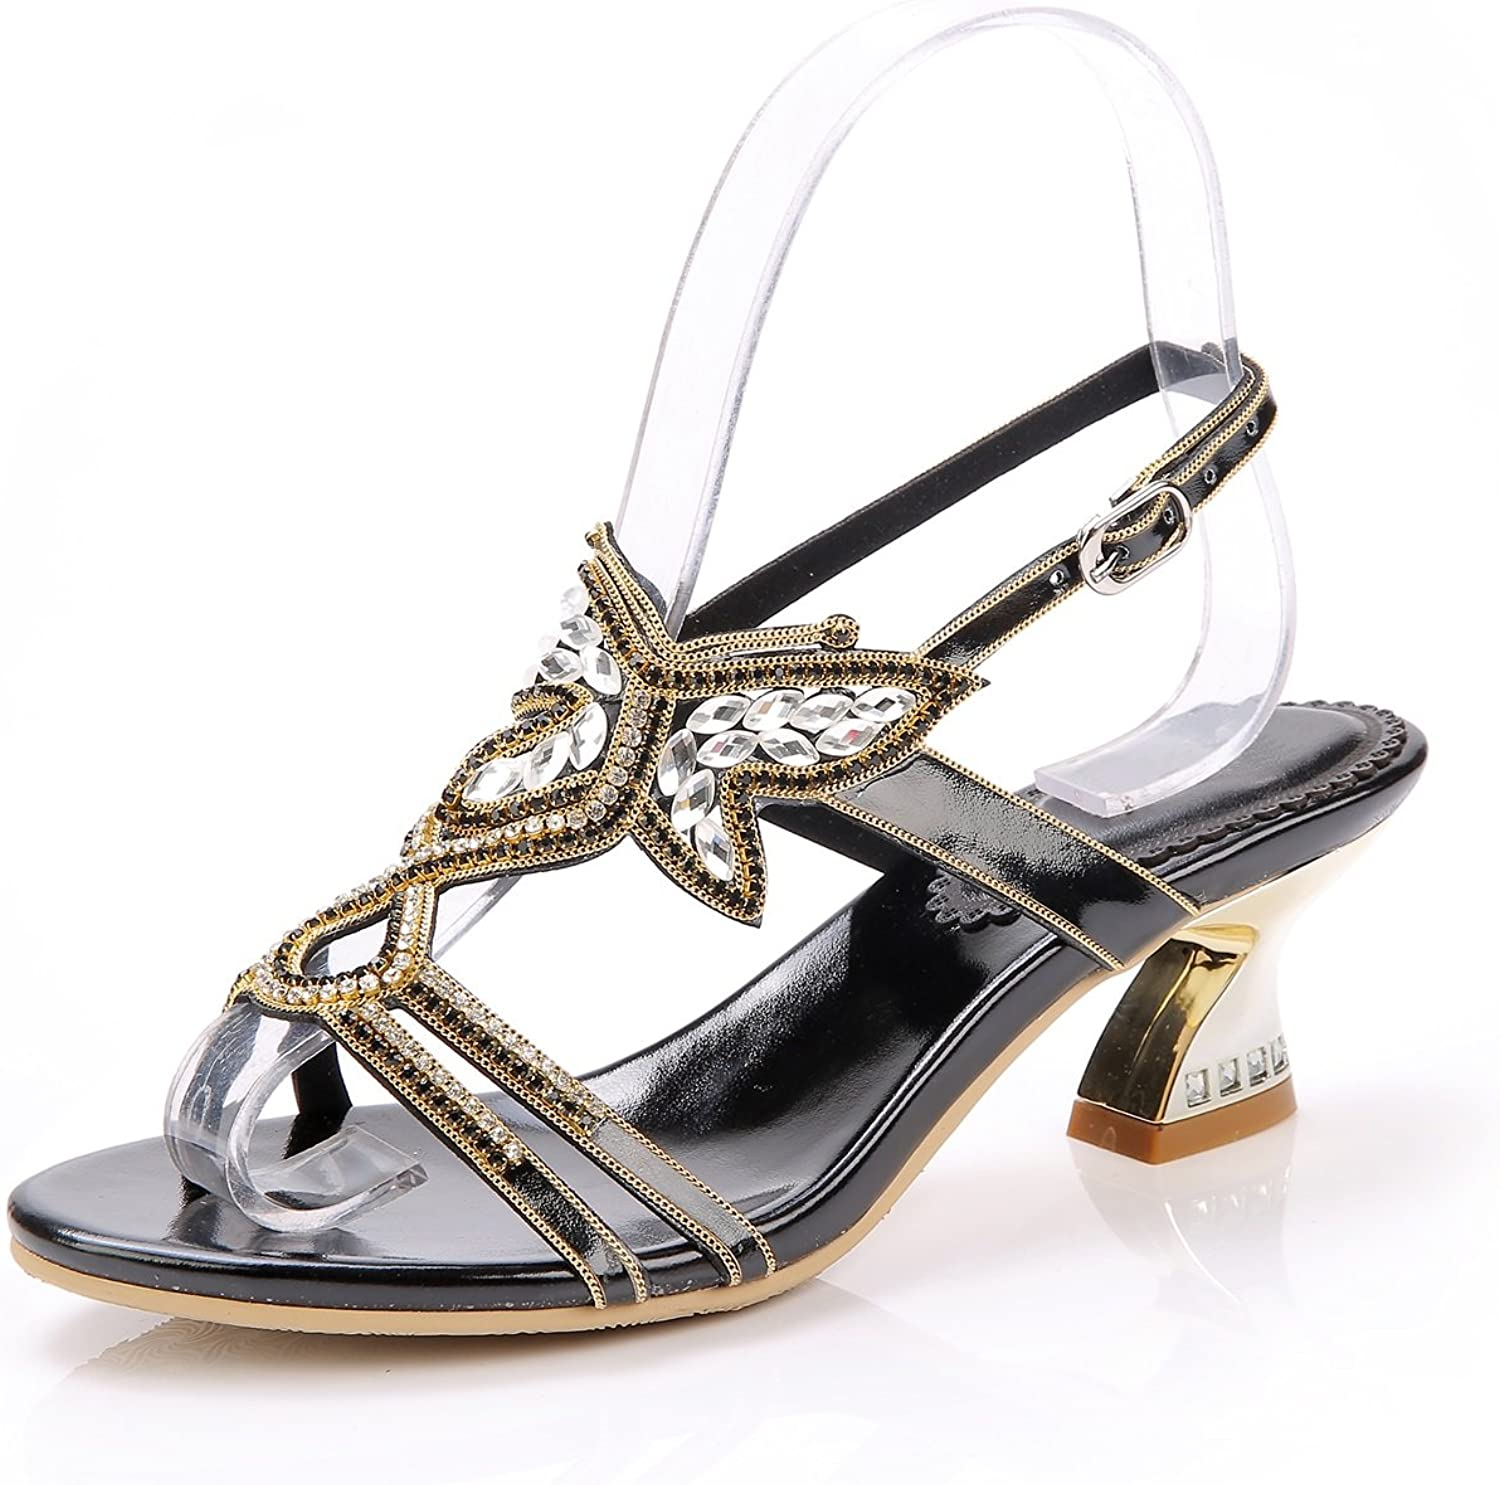 Women's shoes Leather Summer Fashion Boots Evening Wedding Bridal Prom Party Low Heel Sandals